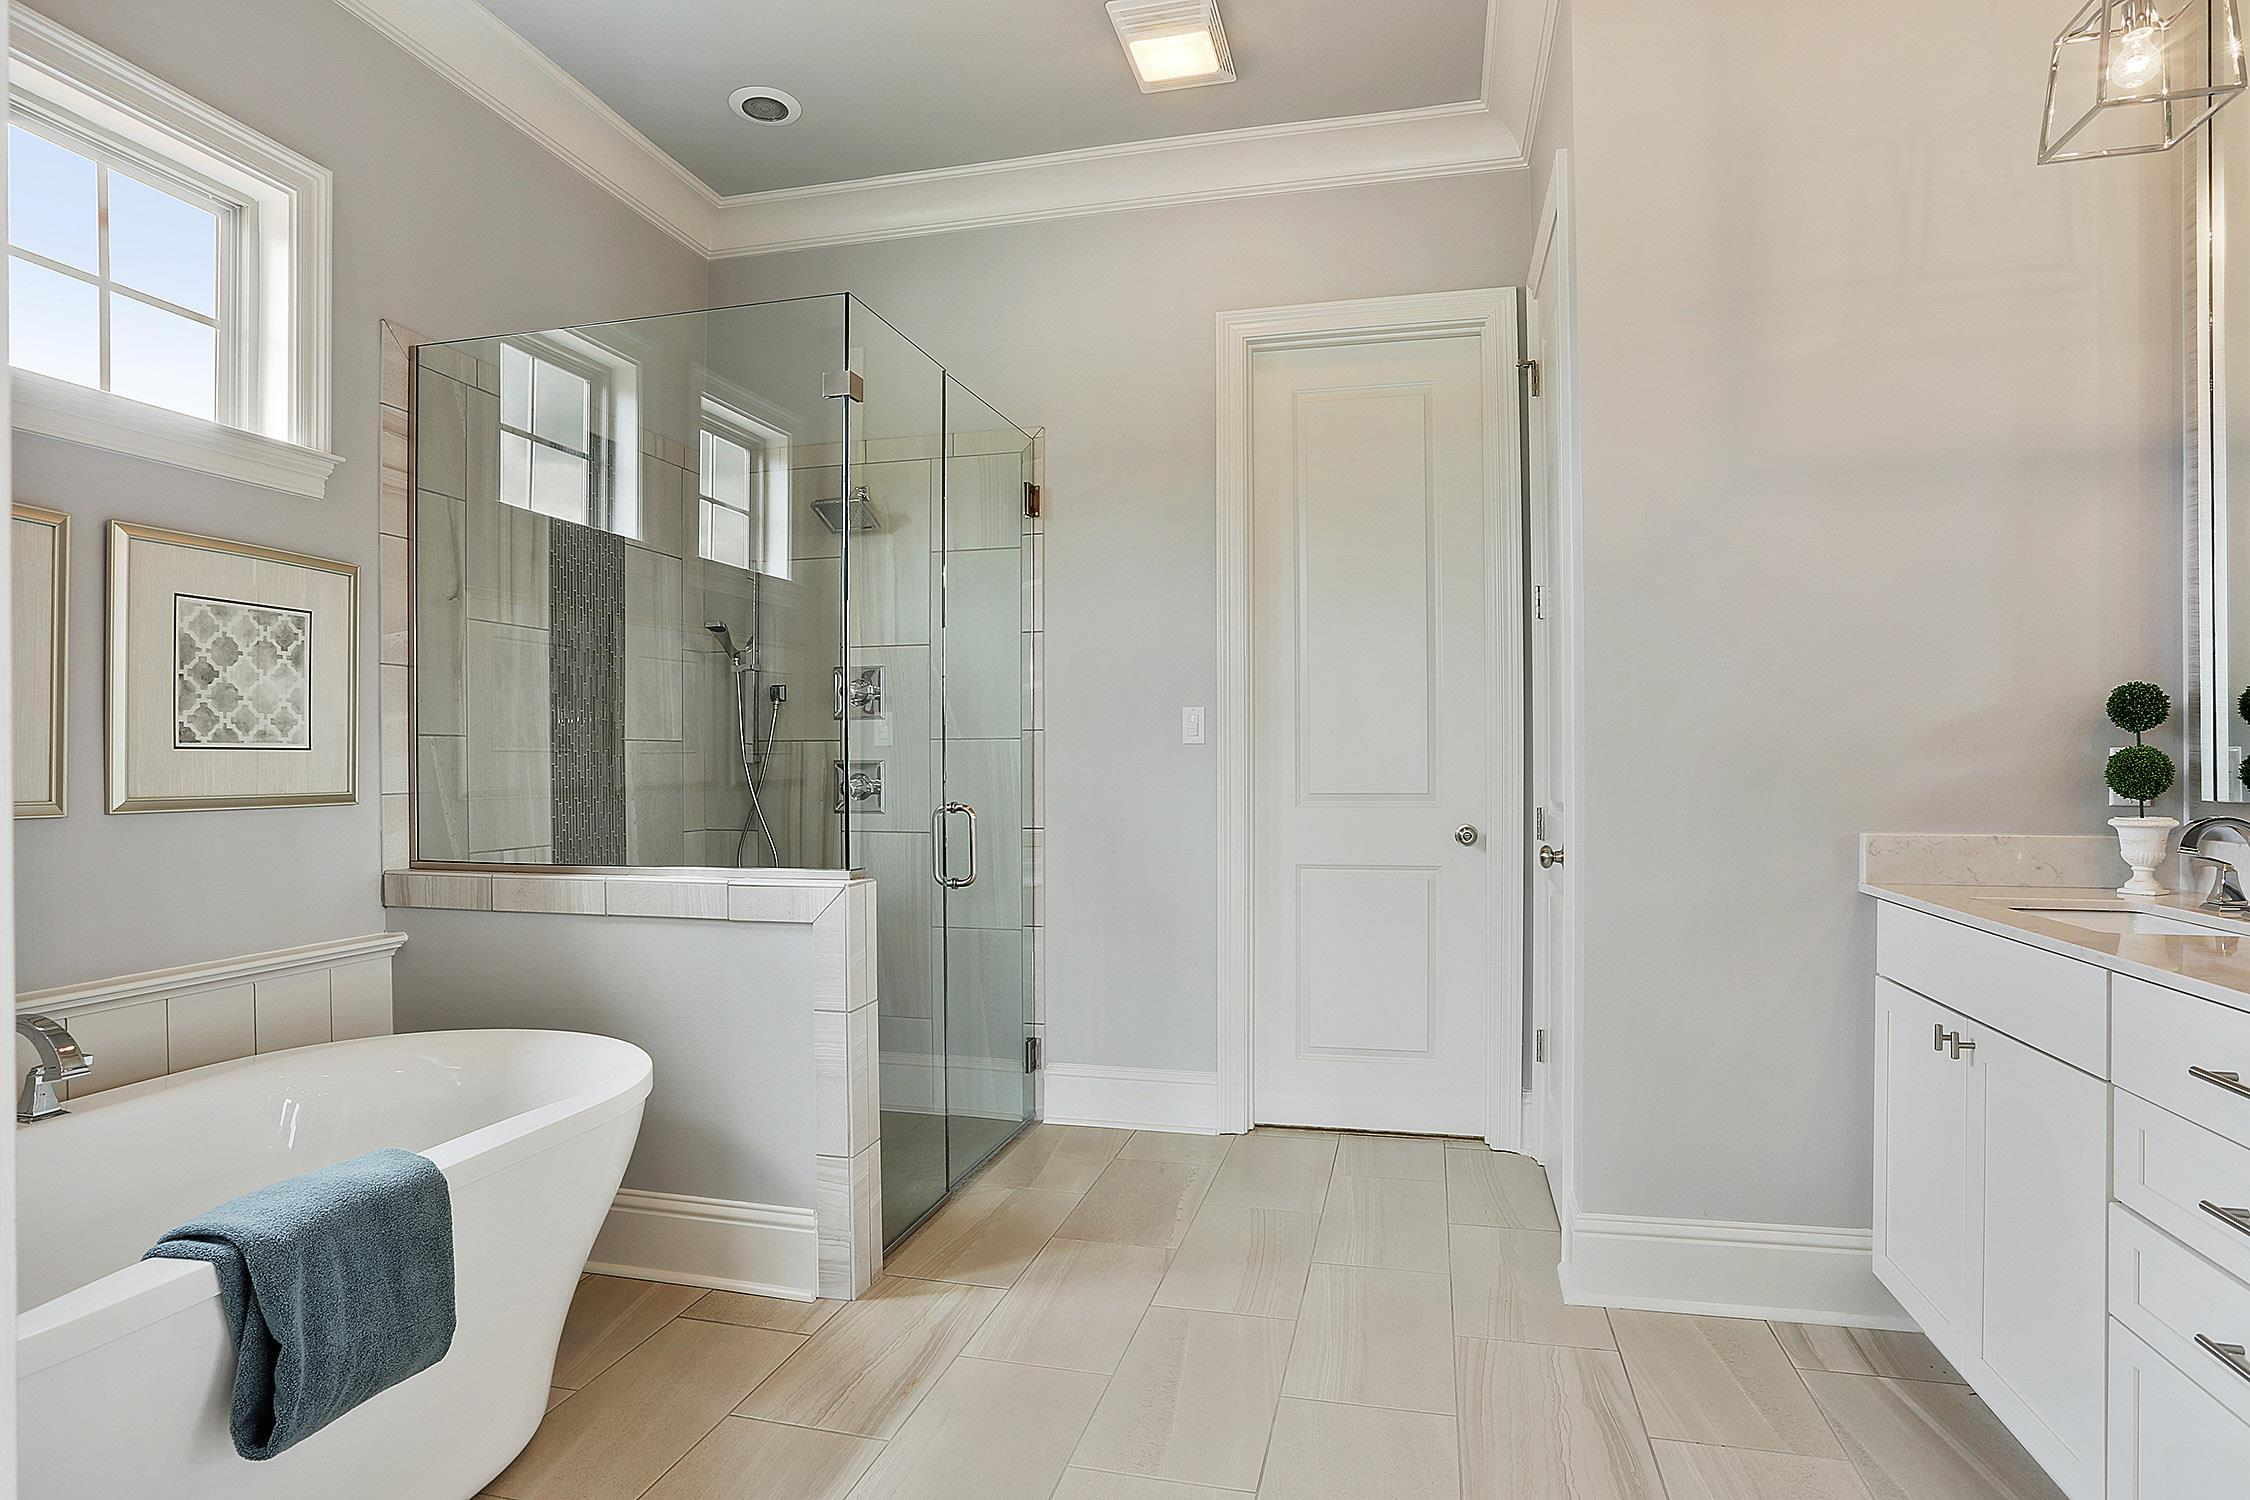 Bathroom featured in the Oakmont By Highland Homes in New Orleans, LA